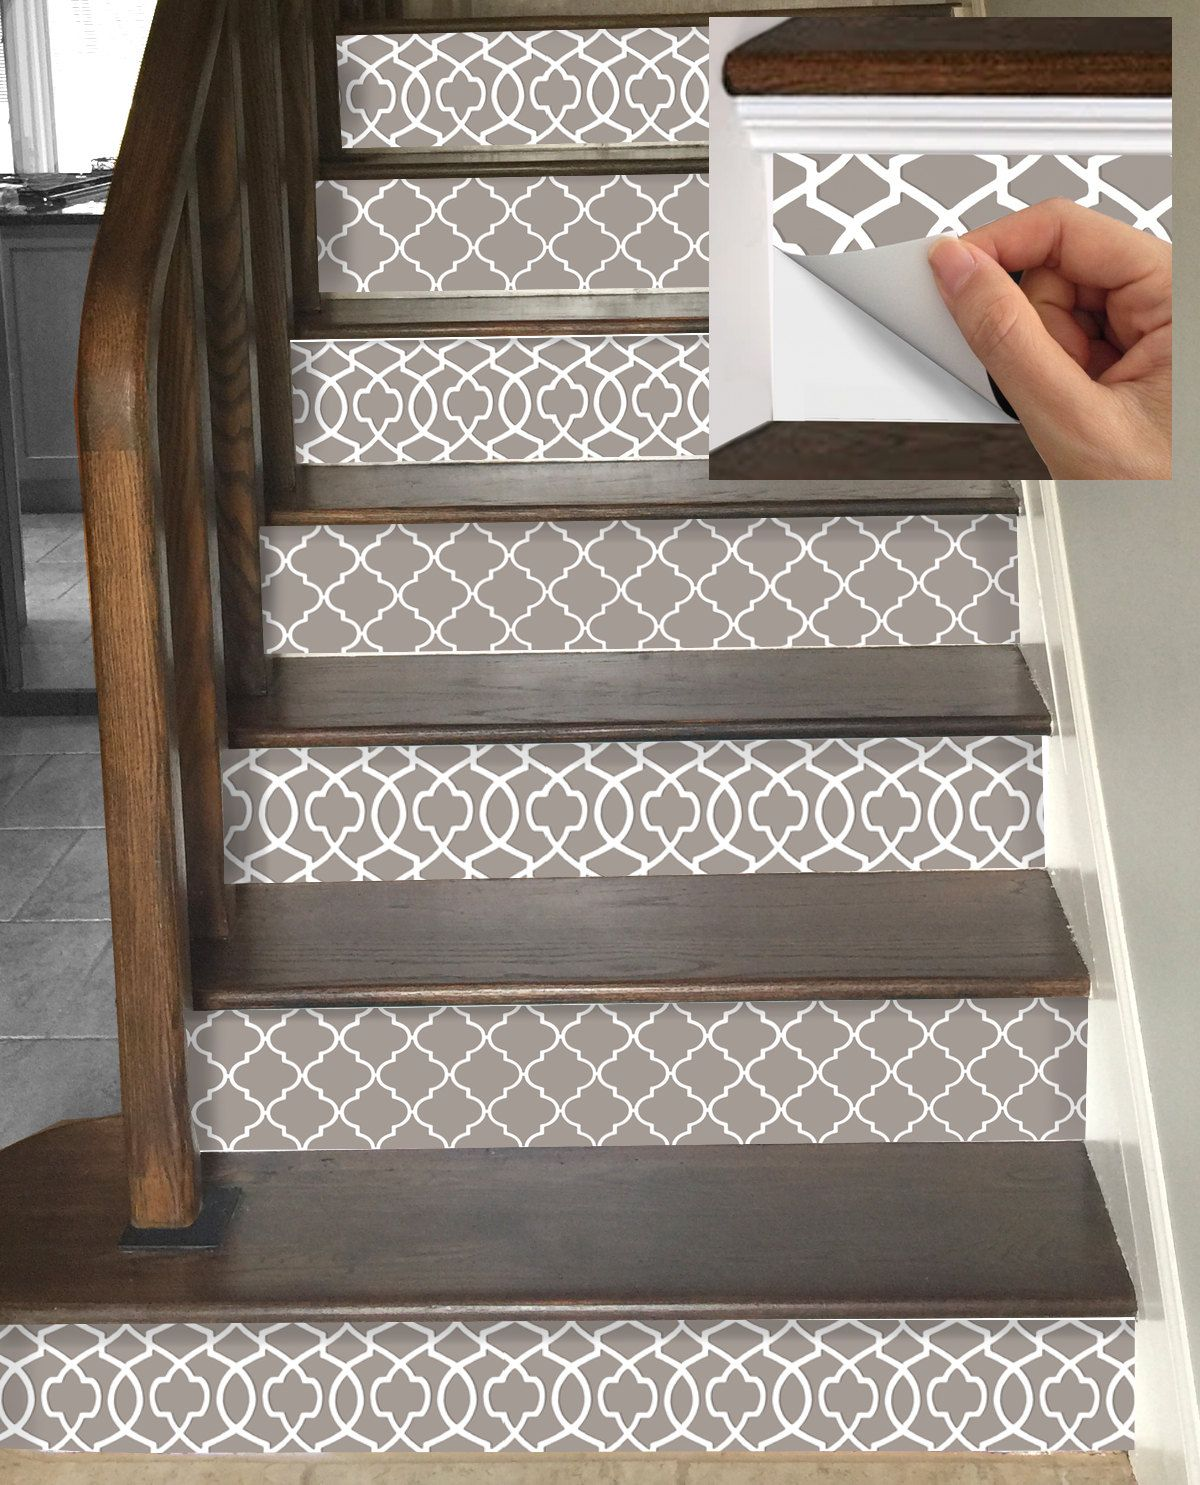 58 Cool Ideas For Decorating Stair Risers: Removable. Gray And White. Love This